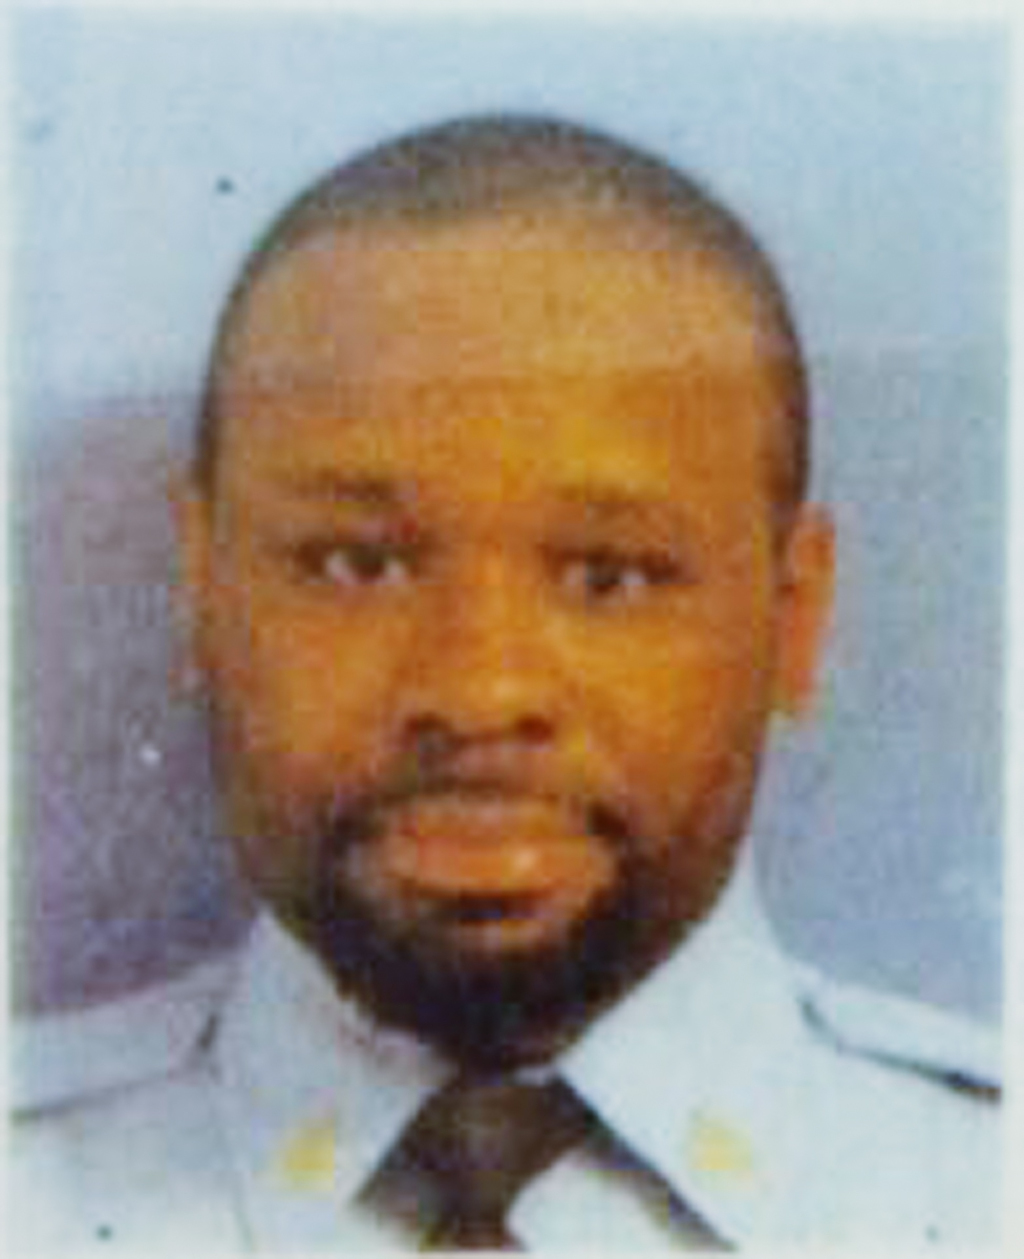 This undated photo provided by the Delaware Department of Correction shows Sgt. Steven Floyd. Floyd died in a hostage standoff at the J...